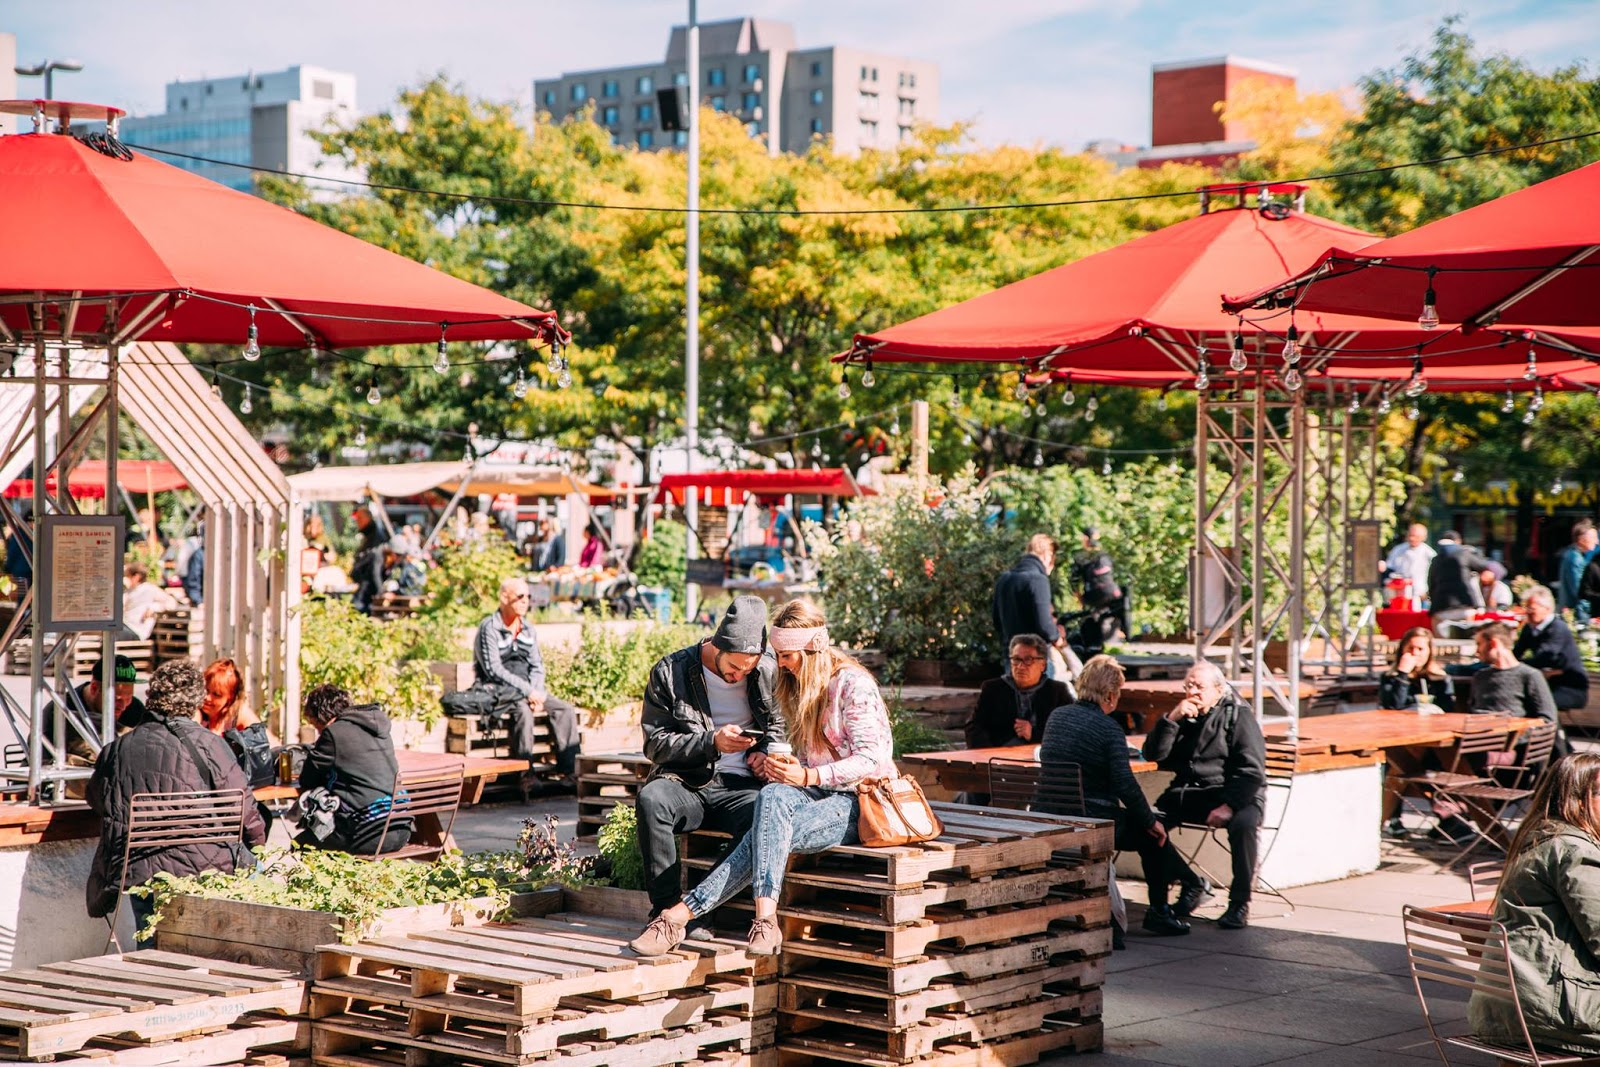 11 Things Every Traveler Should Experience In Montreal 2018